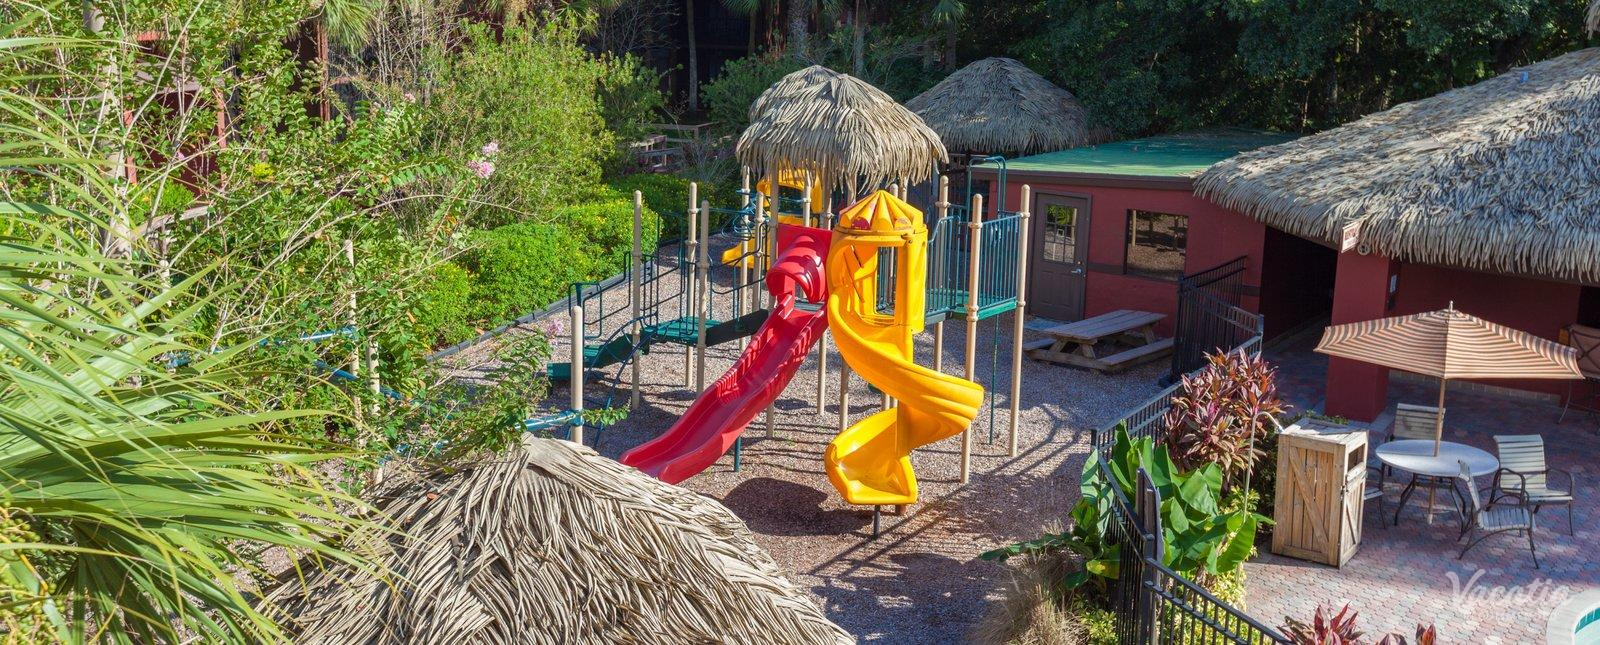 Parkway International Resort Playground